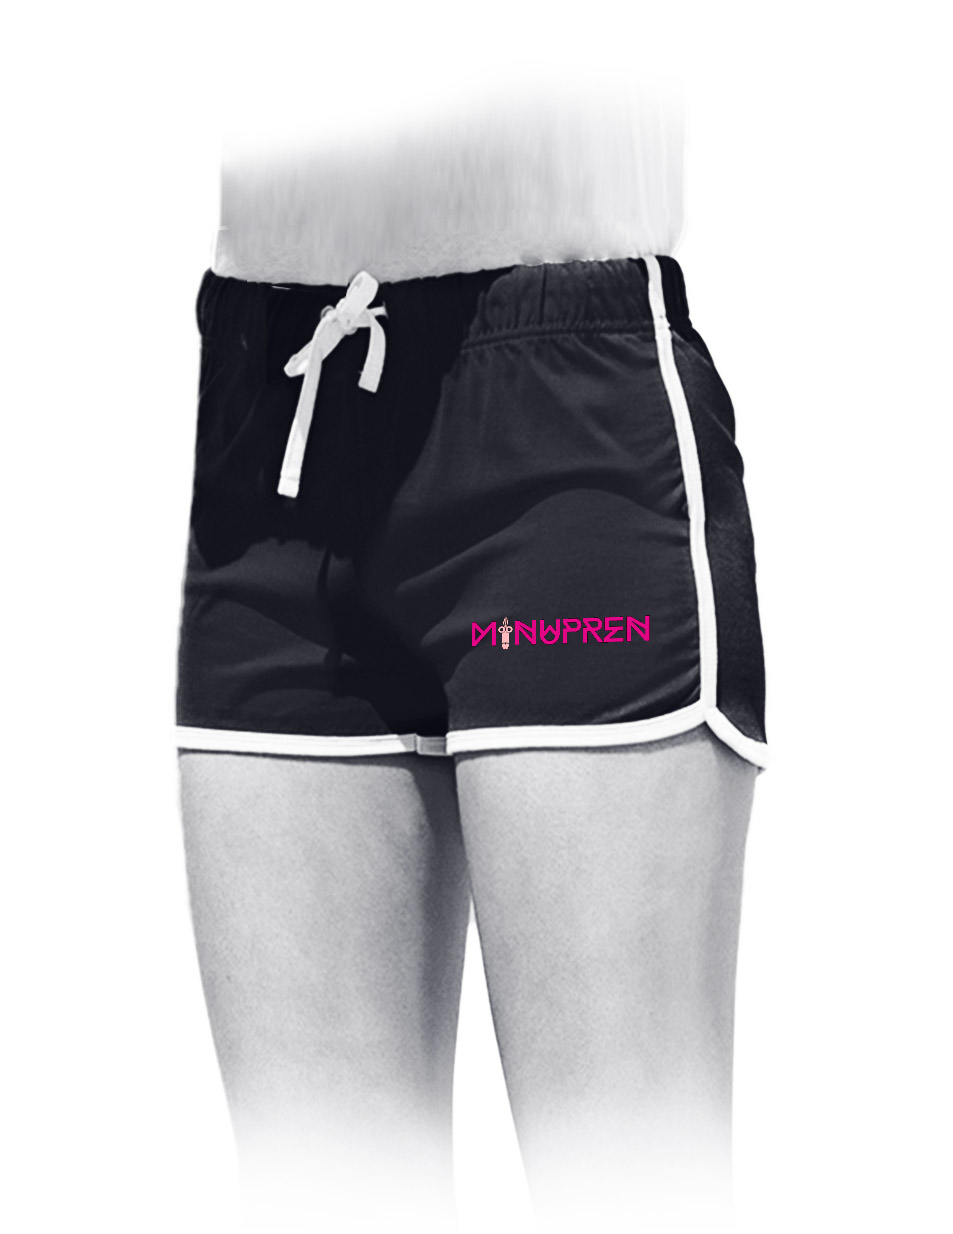 Minupren Womens Retro Shorts